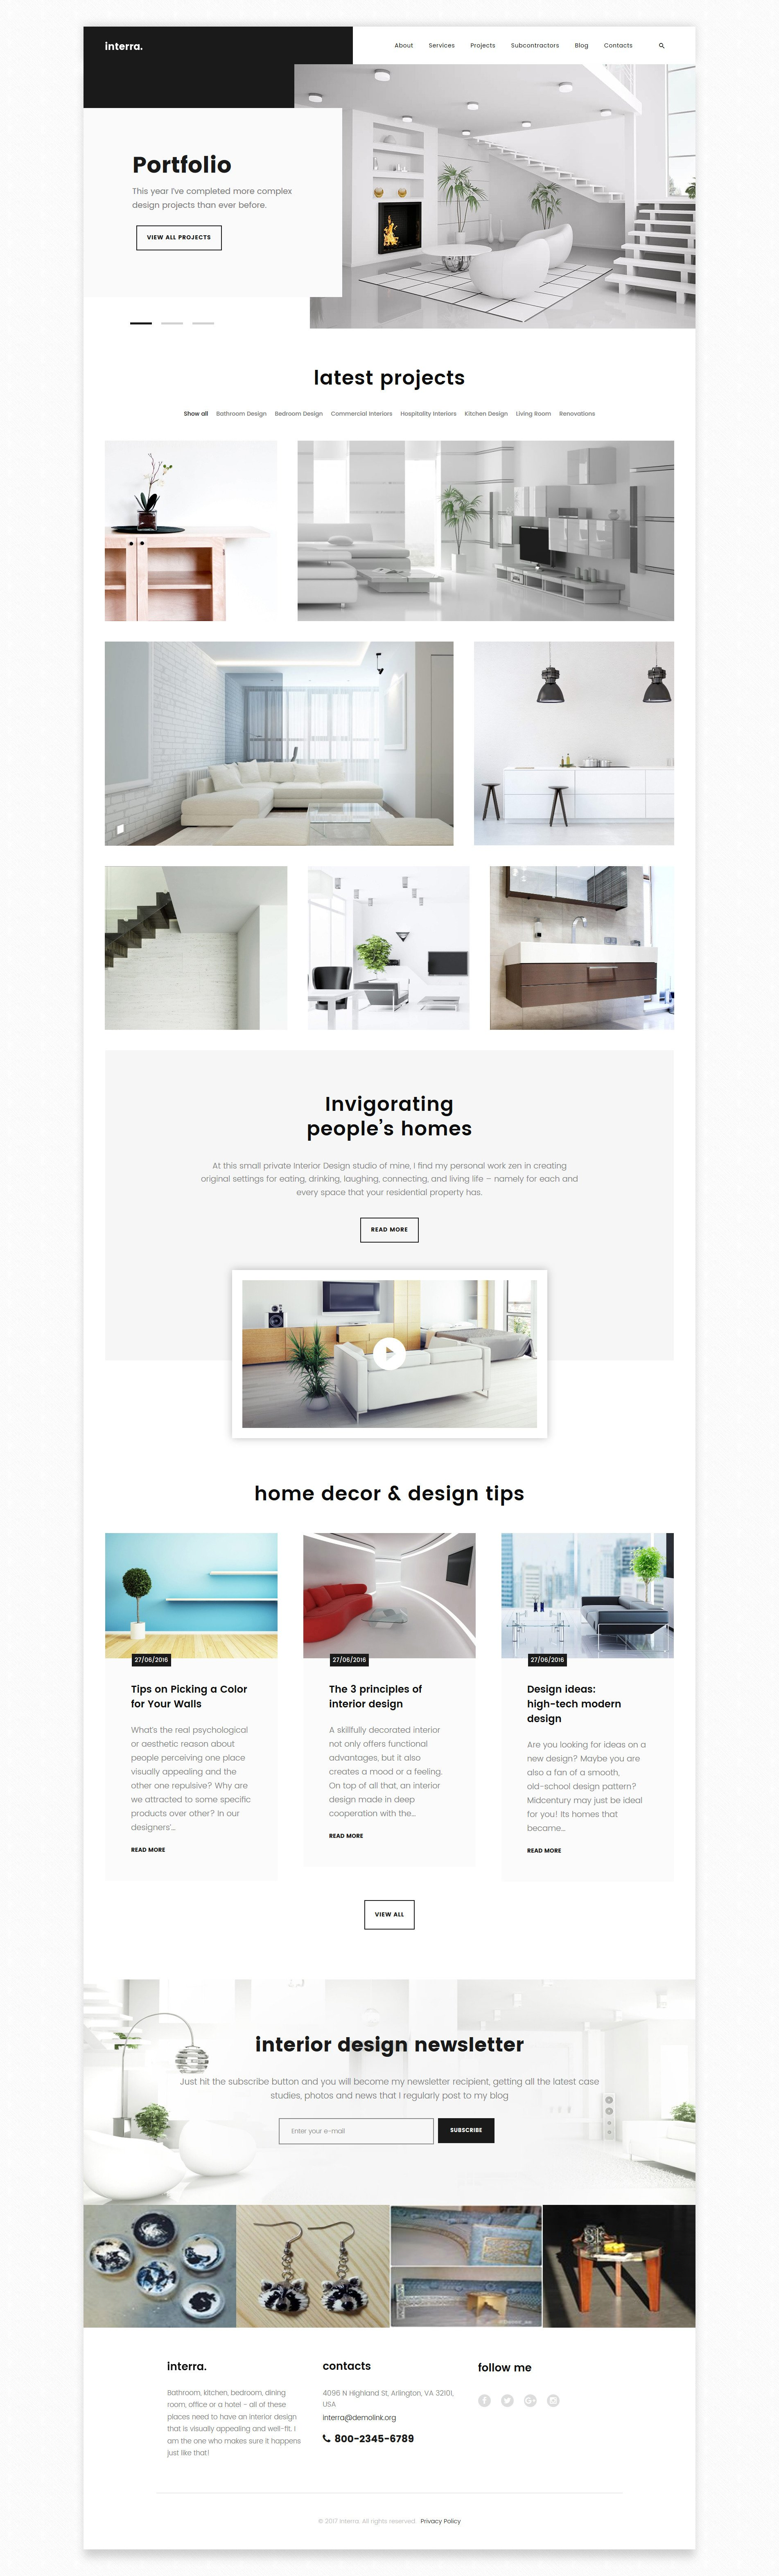 interra the best interior design wordpress theme rh templatemonster com interior designer portfolio sample interior designer portfolio for job